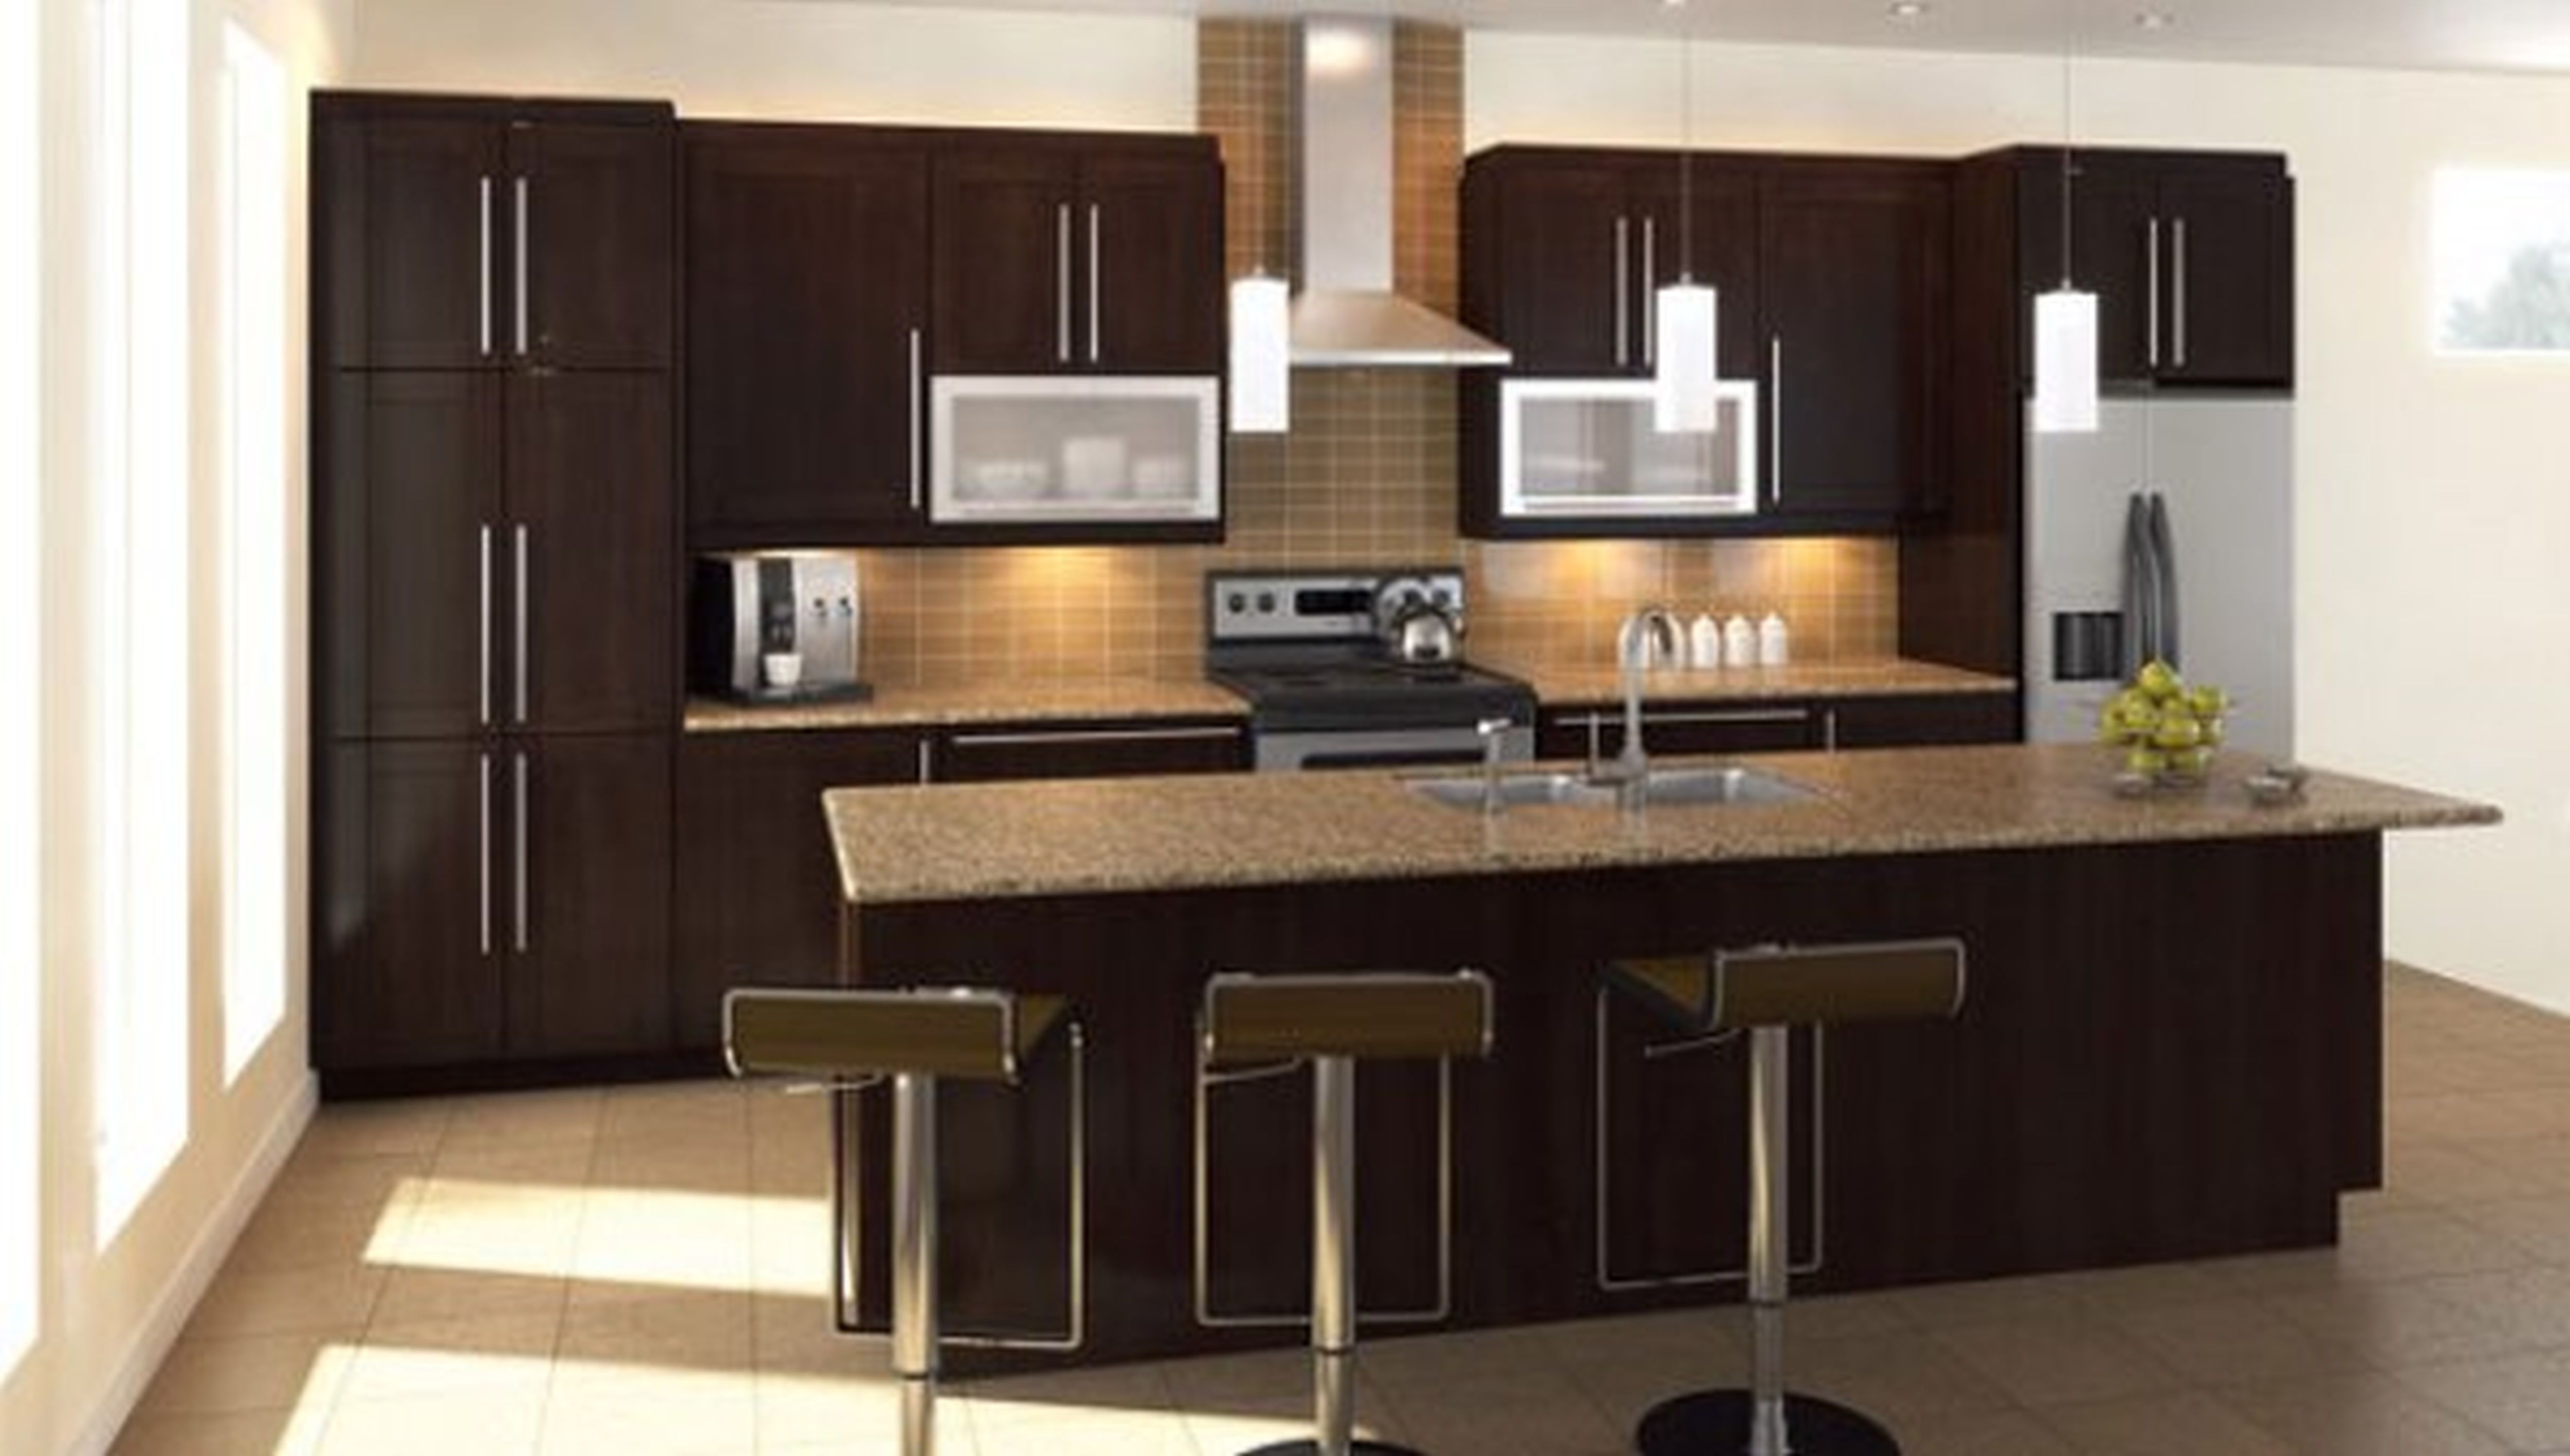 16 Choosing The Right Home Depot Kitchen Designer Best Ikea What Does A Home Depot Kitchen Designer Do Keep On Salary Design Software Free Download Classy Bes